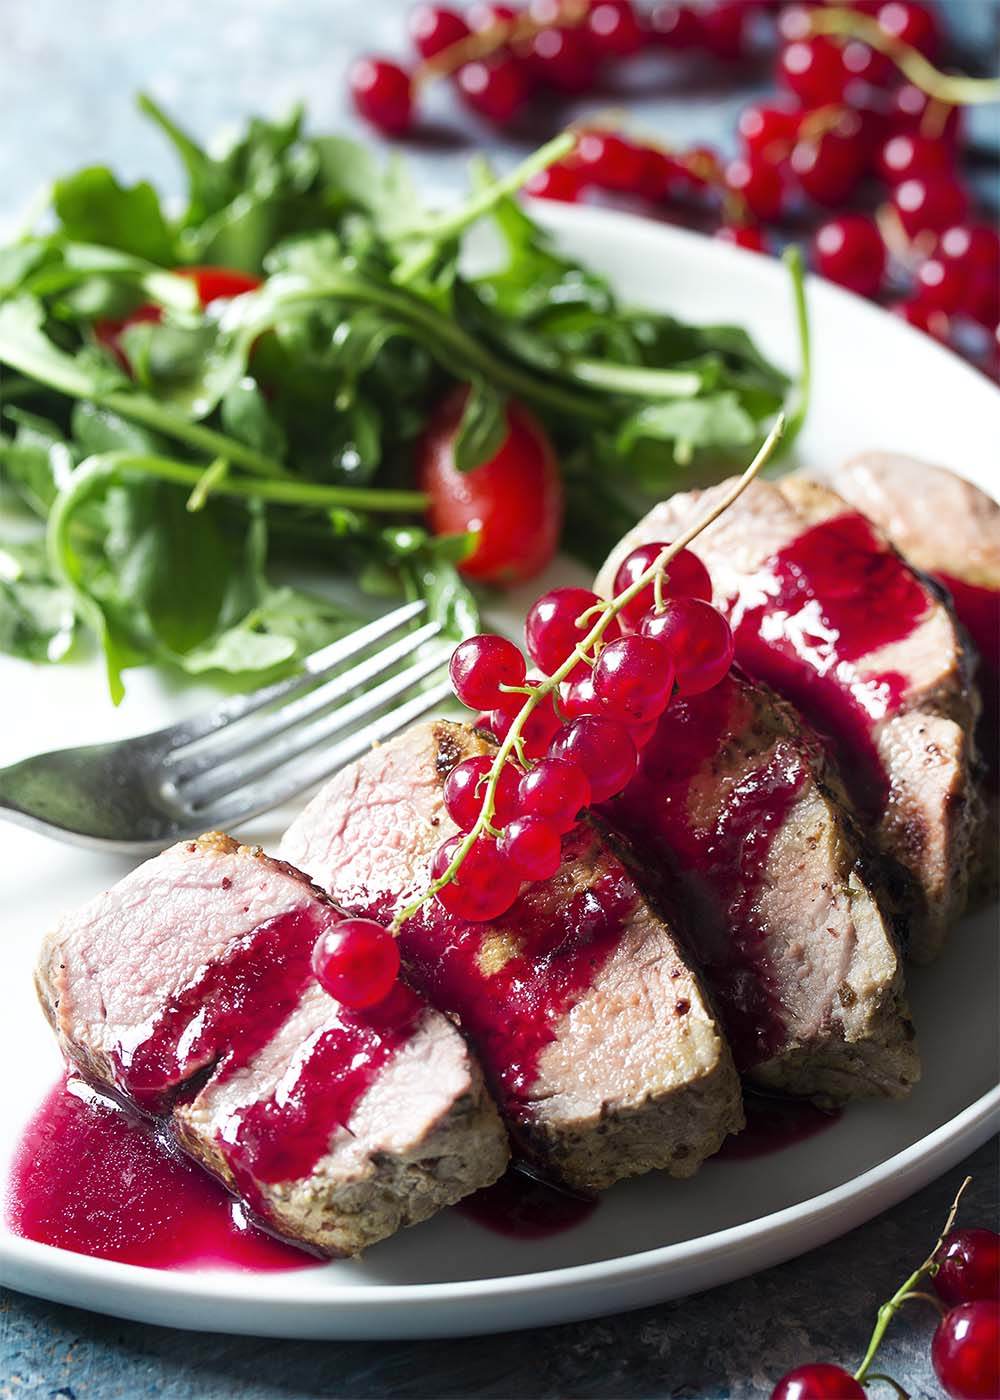 A white dinner plate with savory red currant sauce over sliced roast pork.